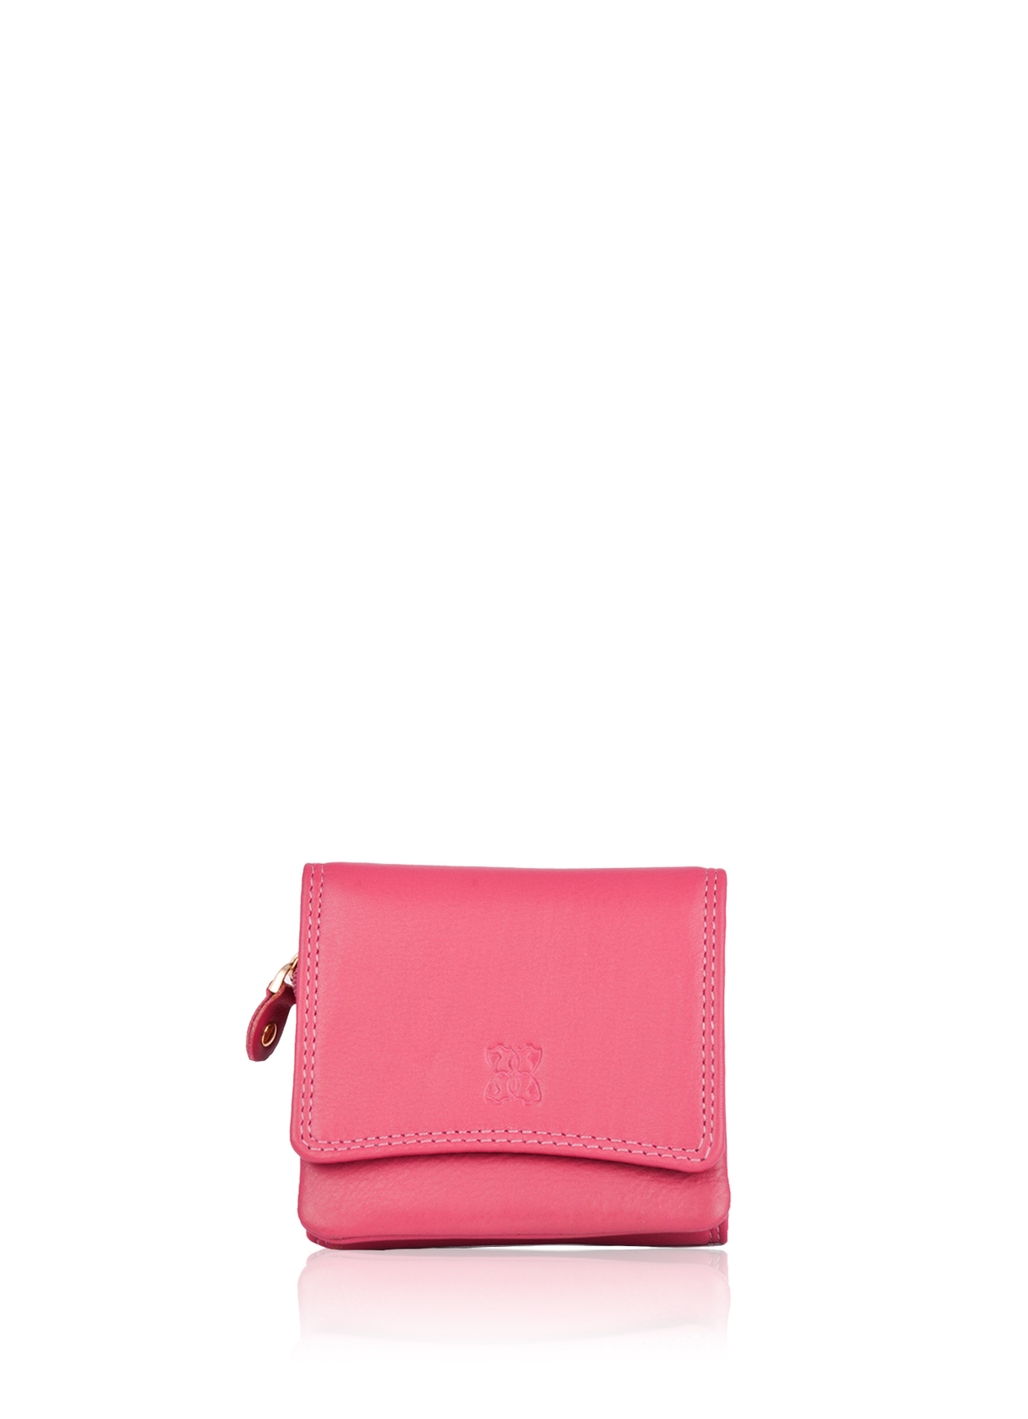 10cm Leather Purse in Cranberry Pink